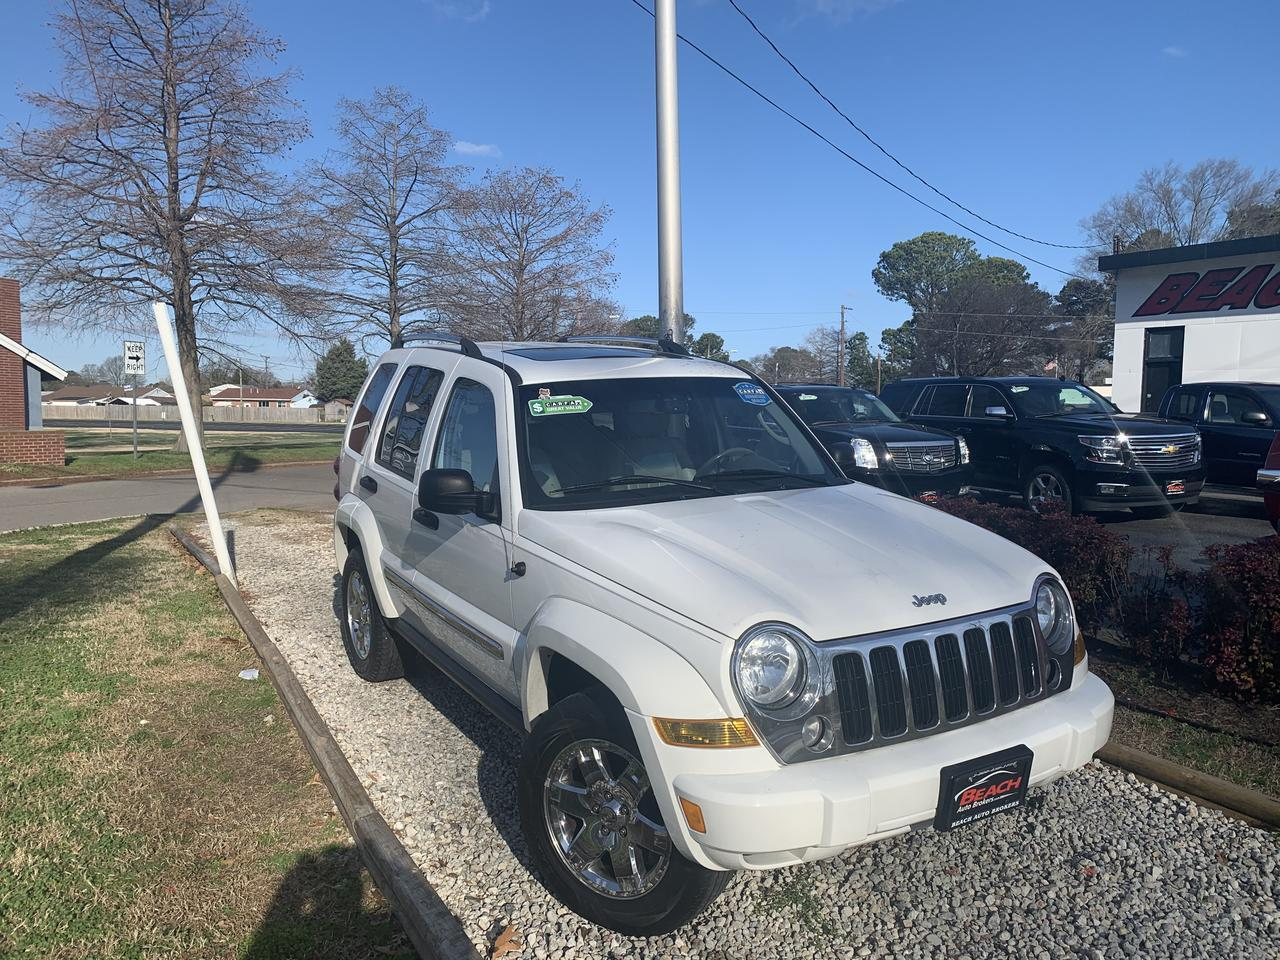 2006 JEEP LIBERTY LIMITED 4X4, WARRANTY, LEATHER, SUNROOF, BLUETOOTH, HEATED SEATS, AUX PORT!